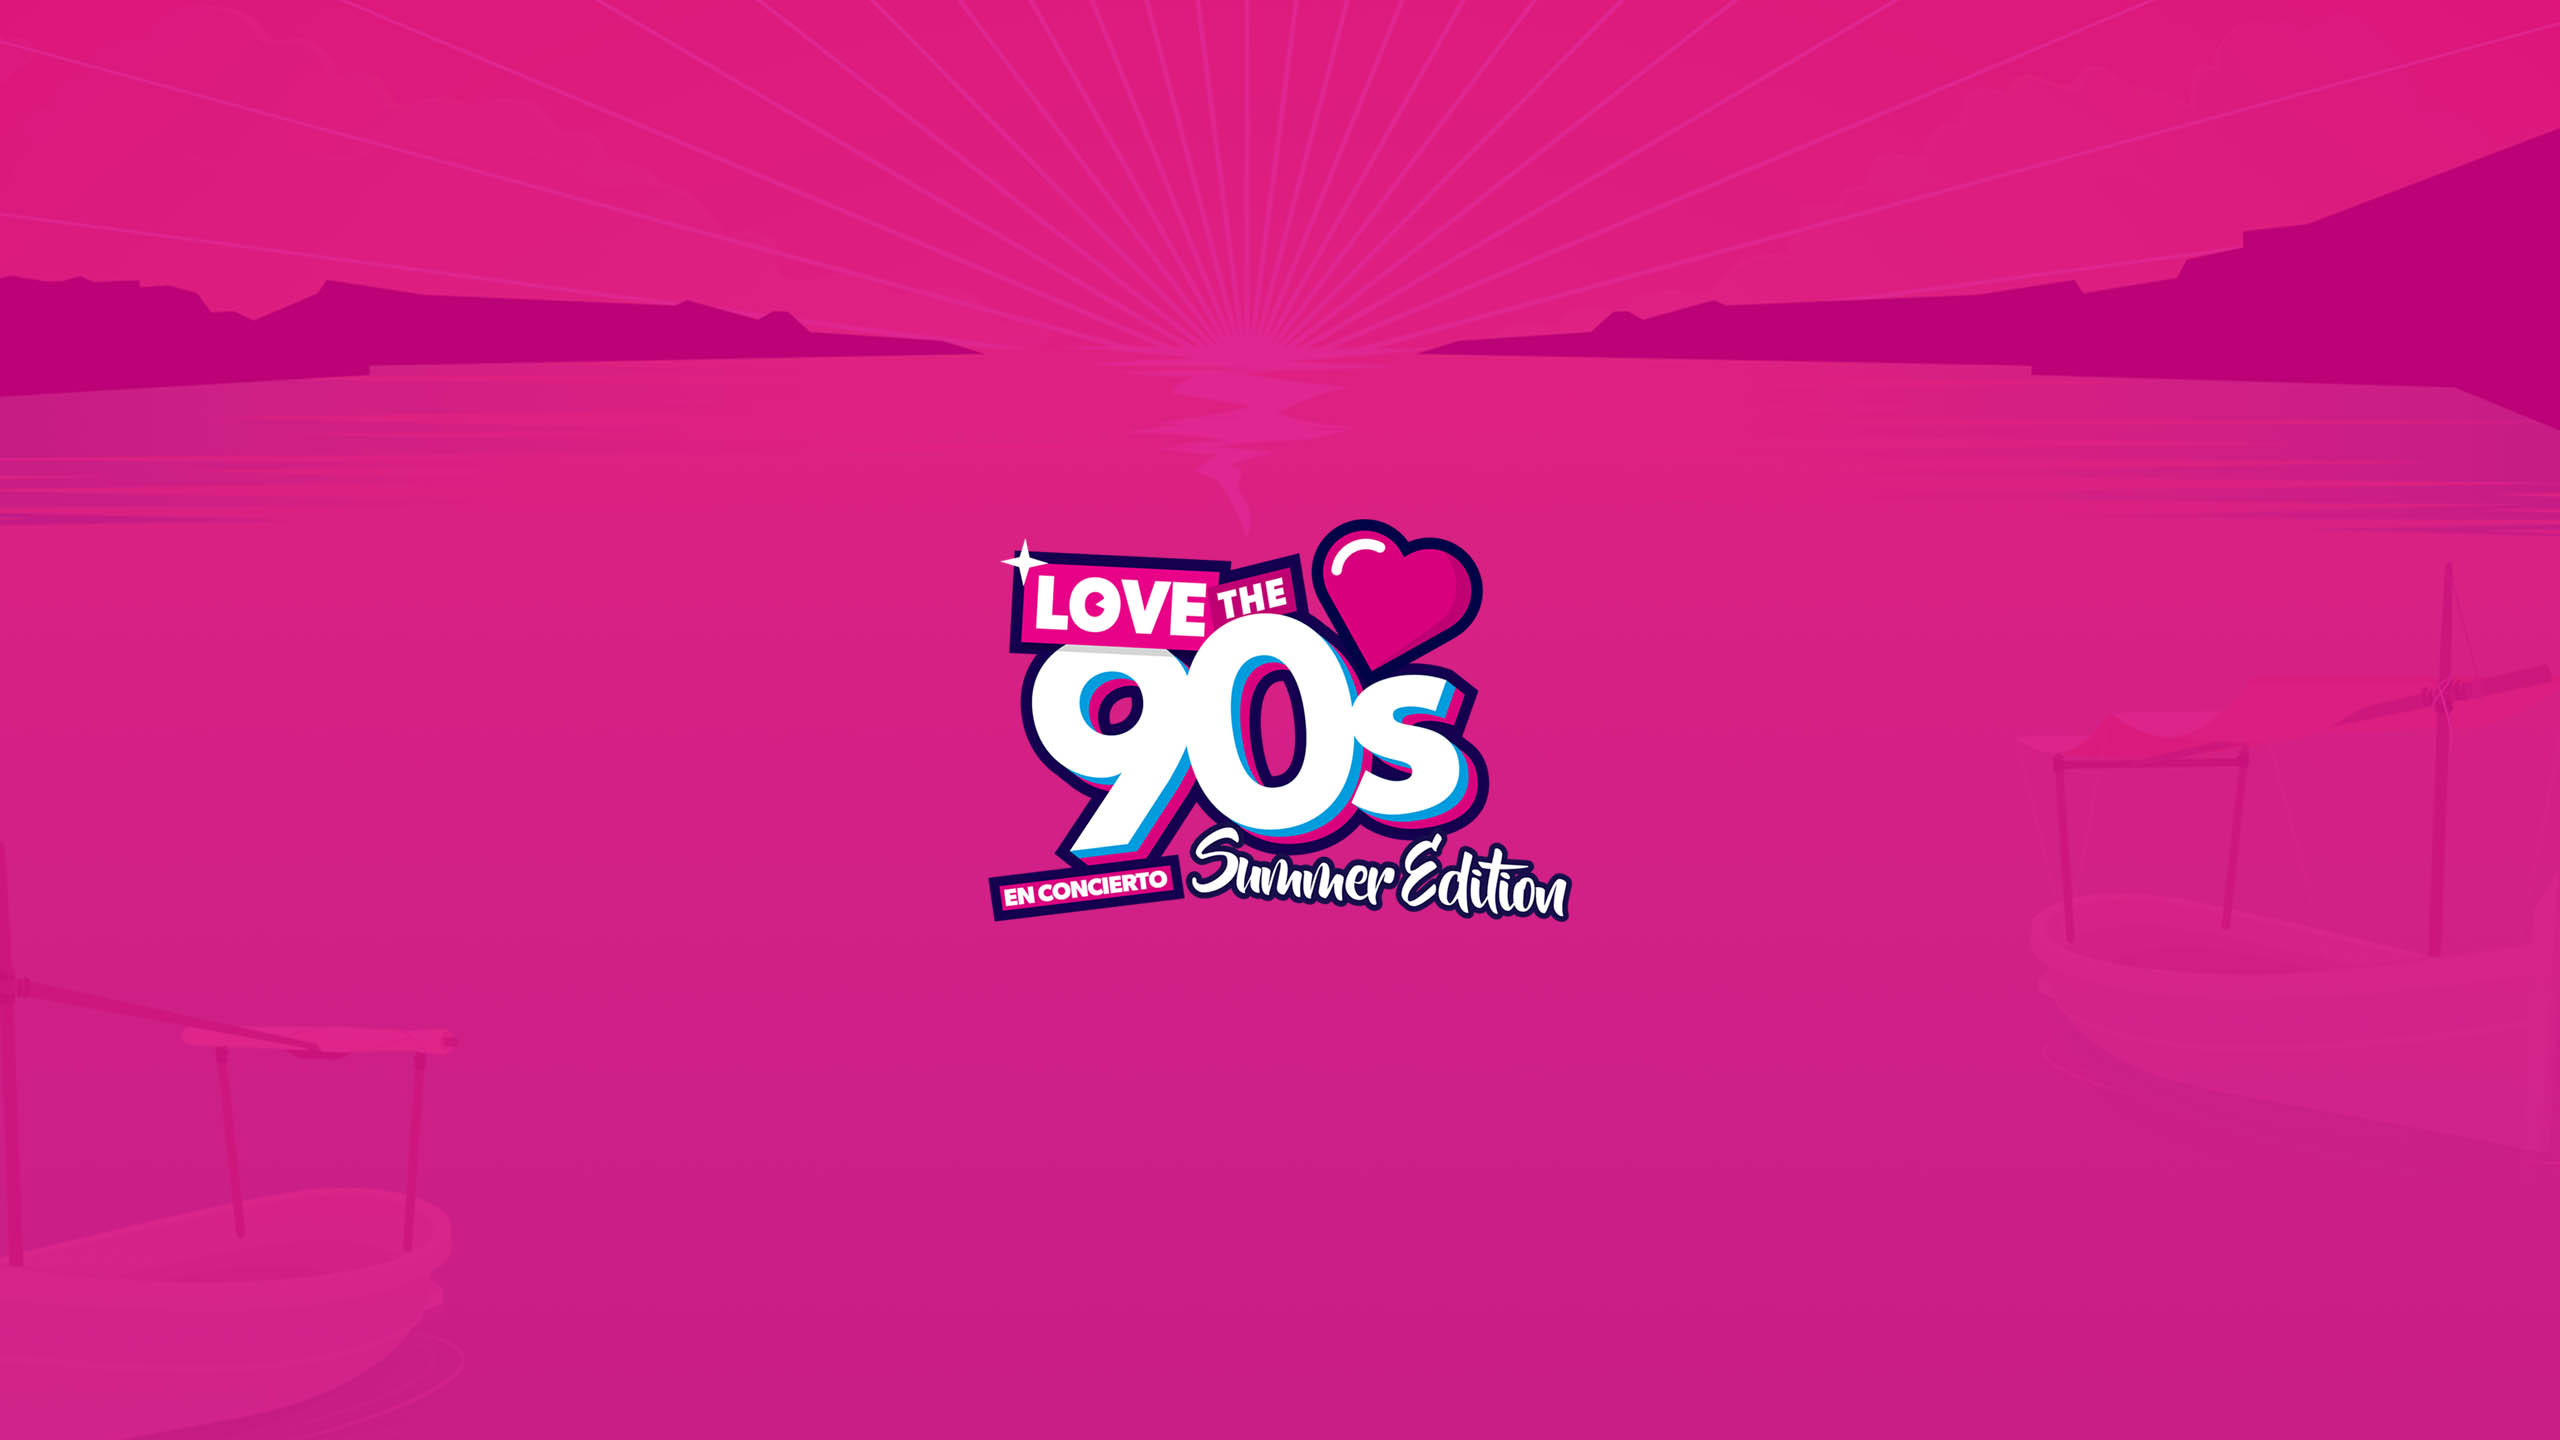 Mabull Events | Projects | Love the 90s: Mallorca Summer Edition (4)